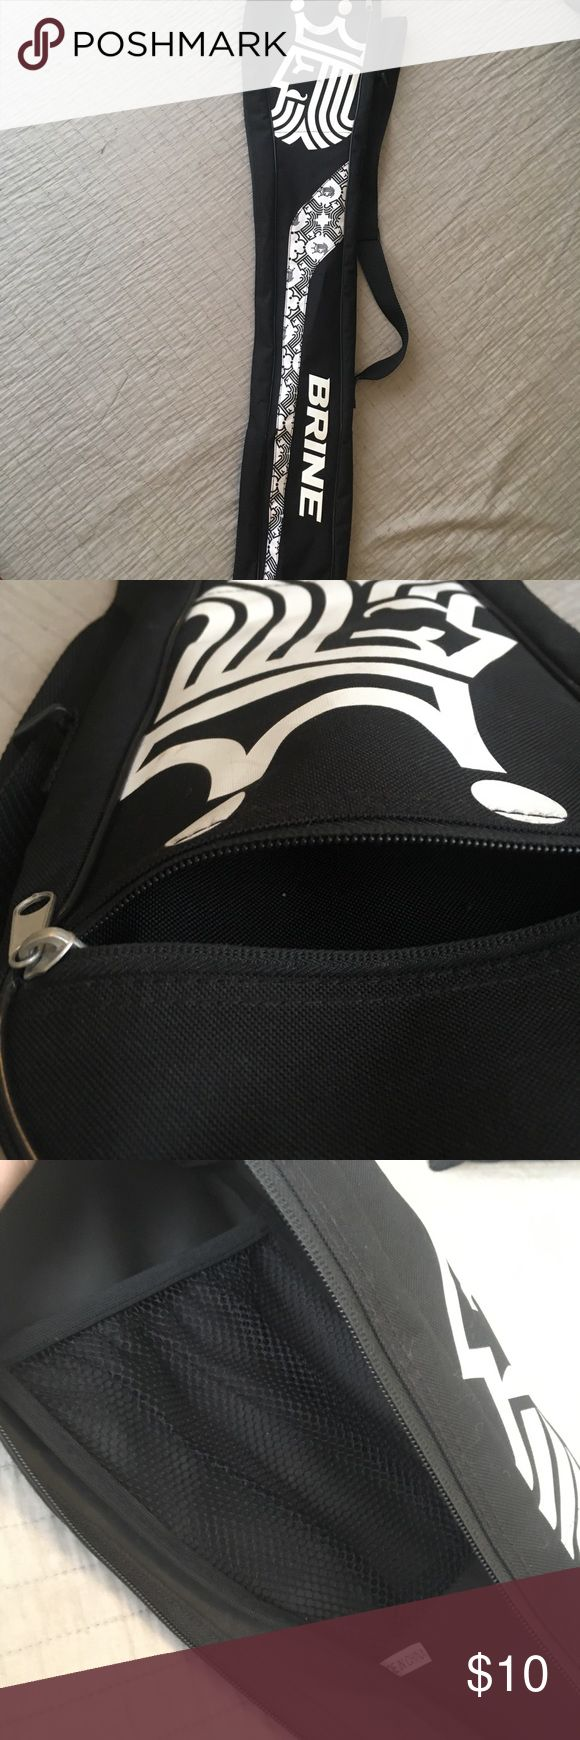 Brine lacrosse bag Only used this for one season. Full zipper allows for easy access to your stick, inside and outside pockets are perfect for storing goggles and mouthguard. brine Bags